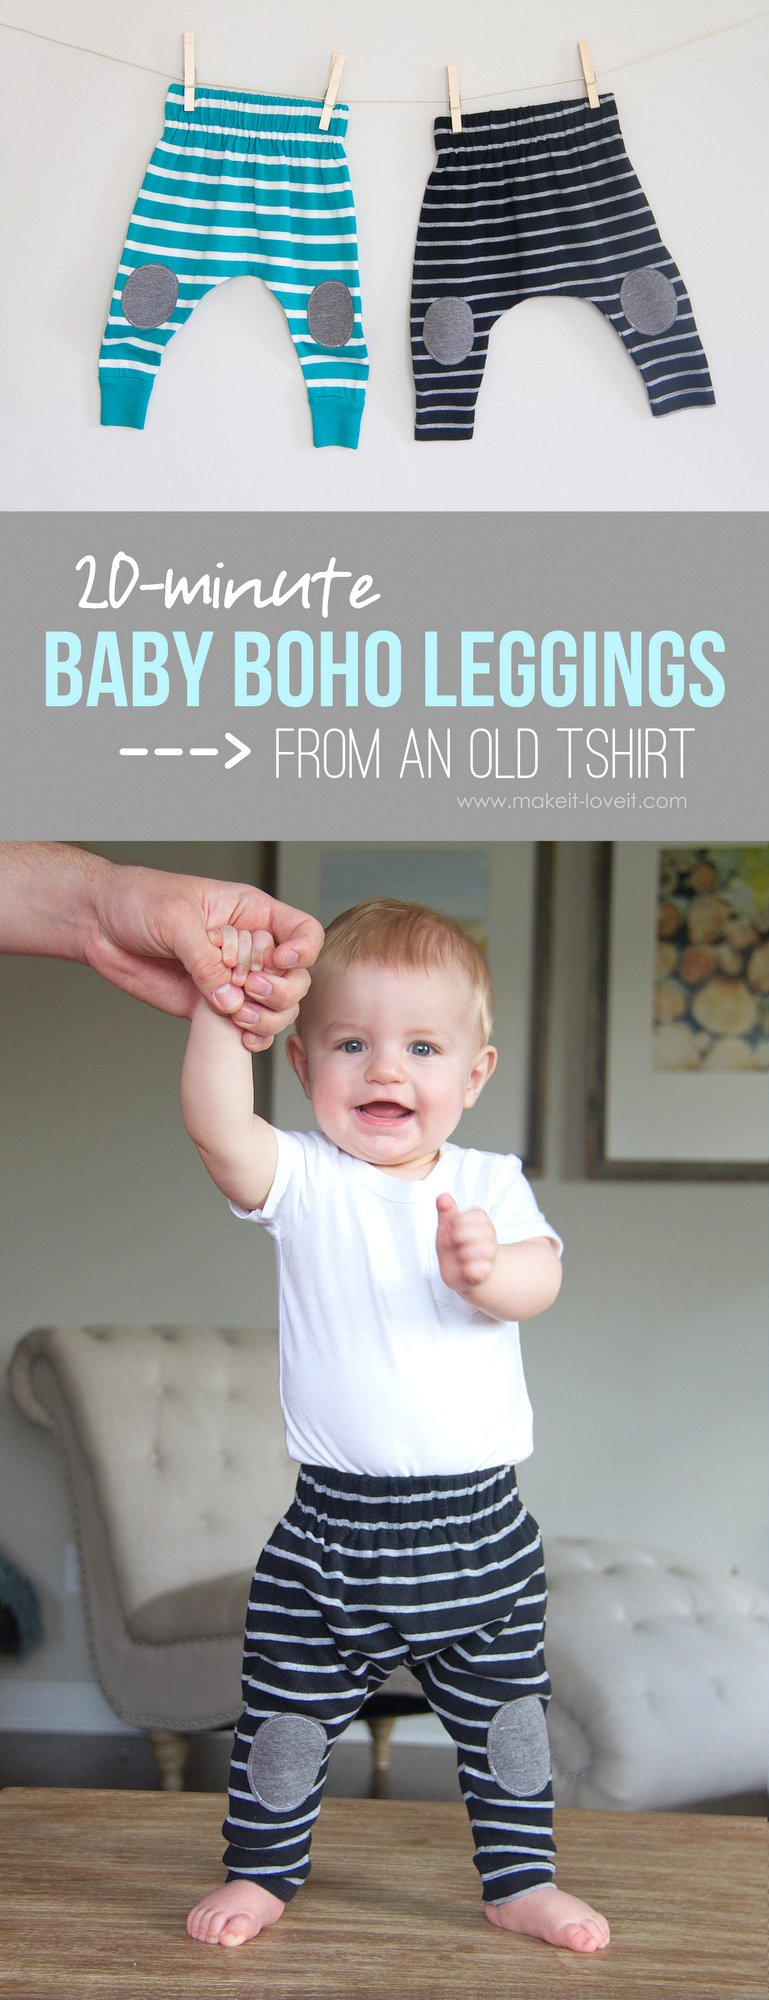 Simple-20-minute-Baby-Boho-Leggings-from-an-old-Tshirt-1